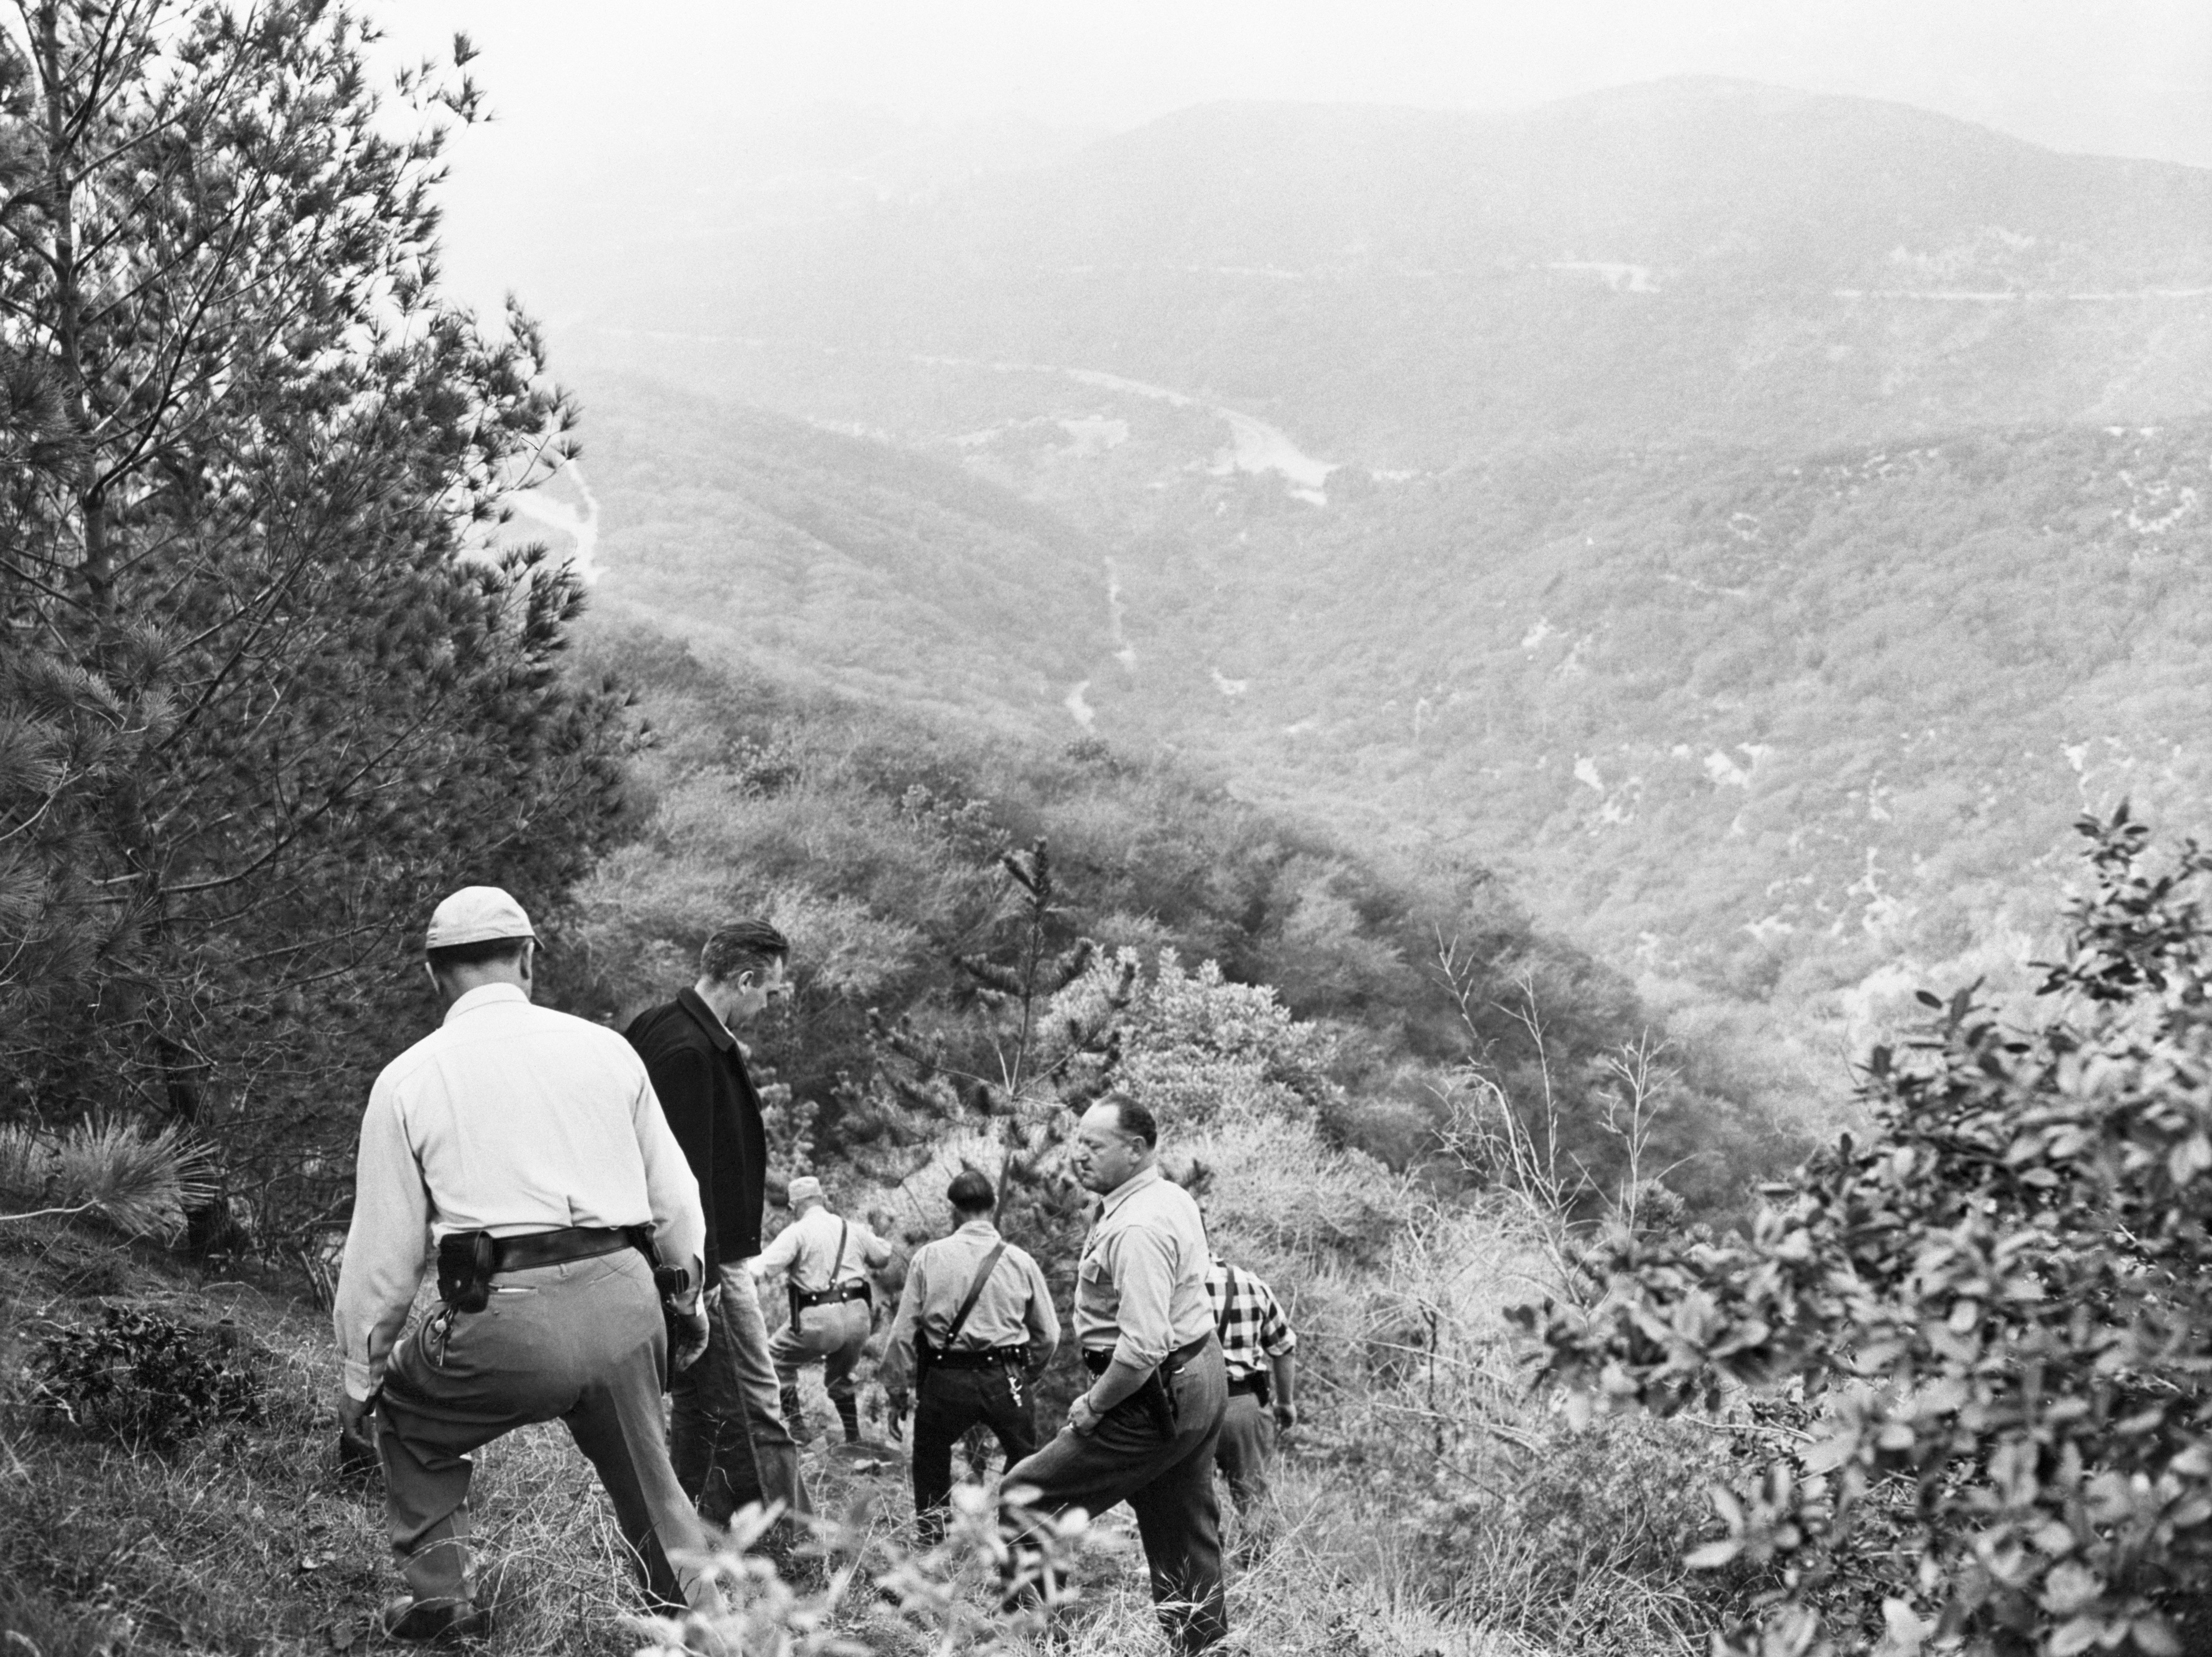 Search party in Griffith Park looking for clues about Spangler's disappearance after finding her purse in the park, Los Angeles, 1949 | Photo: Getty Images